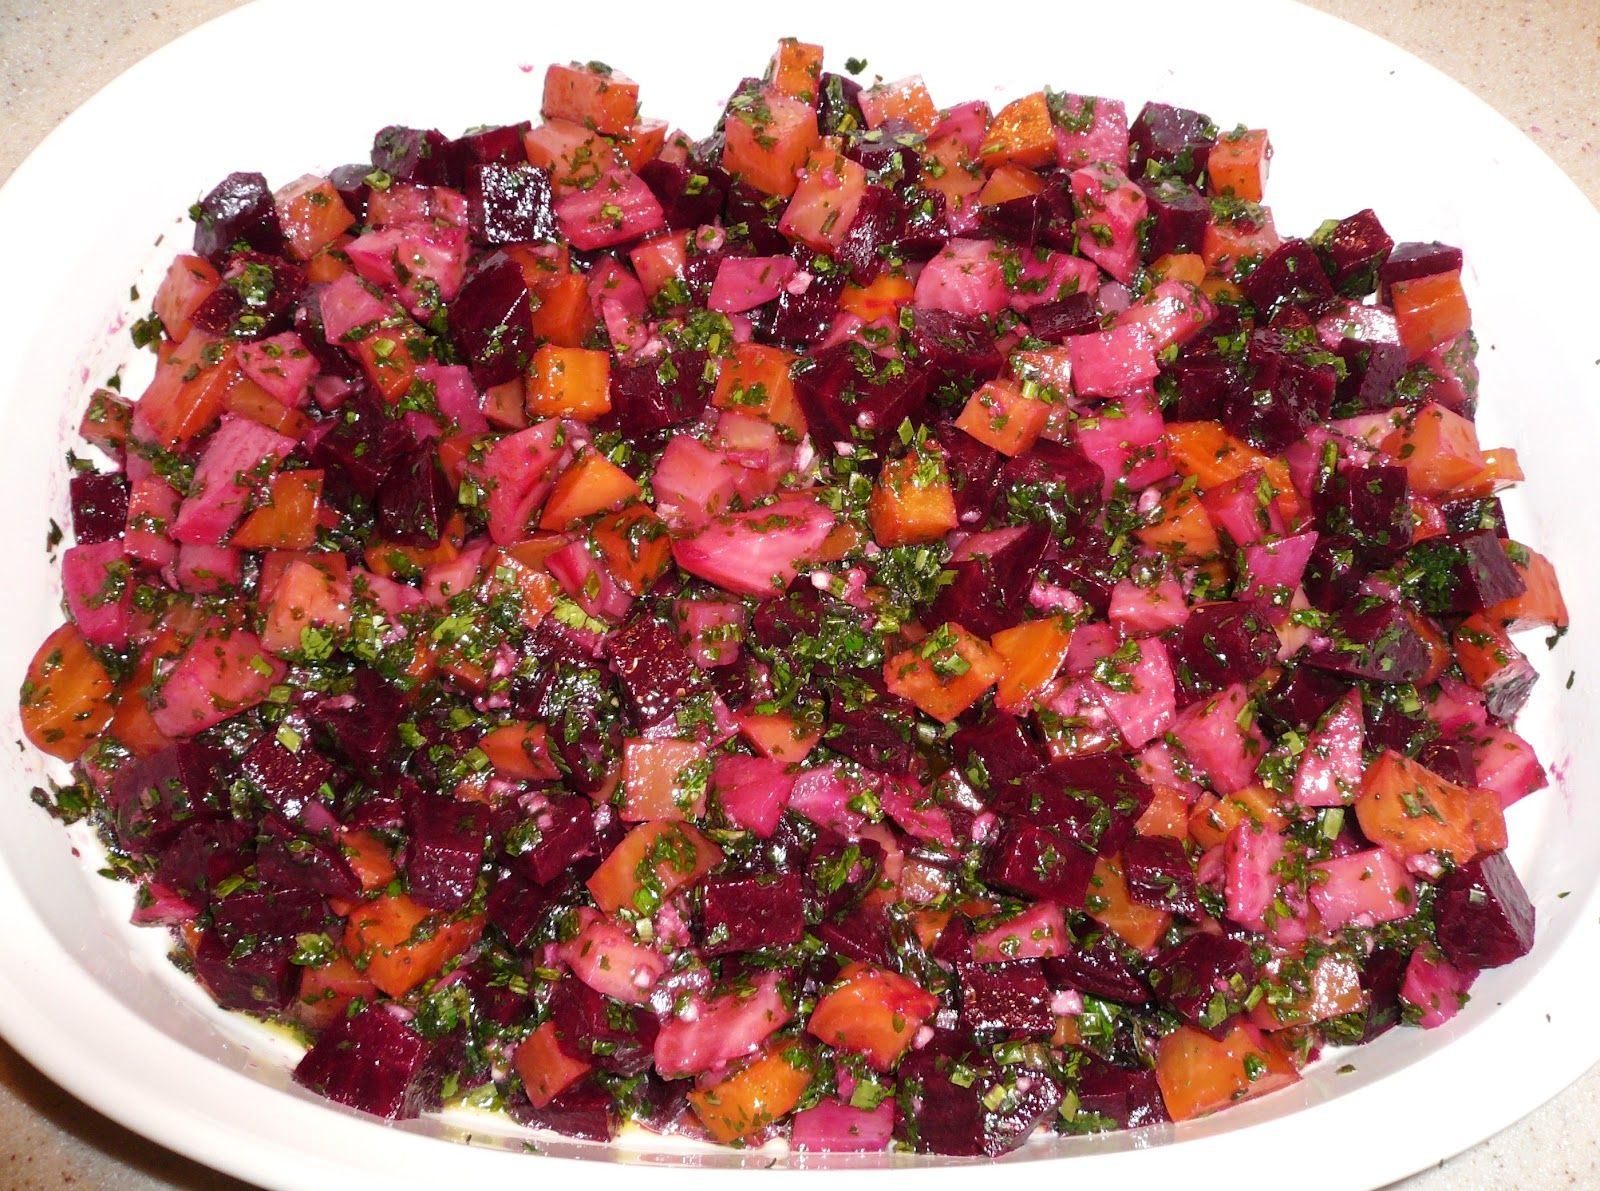 KITCHEN EXCURSIONS: Middle Eastern Roasted Beet Salad